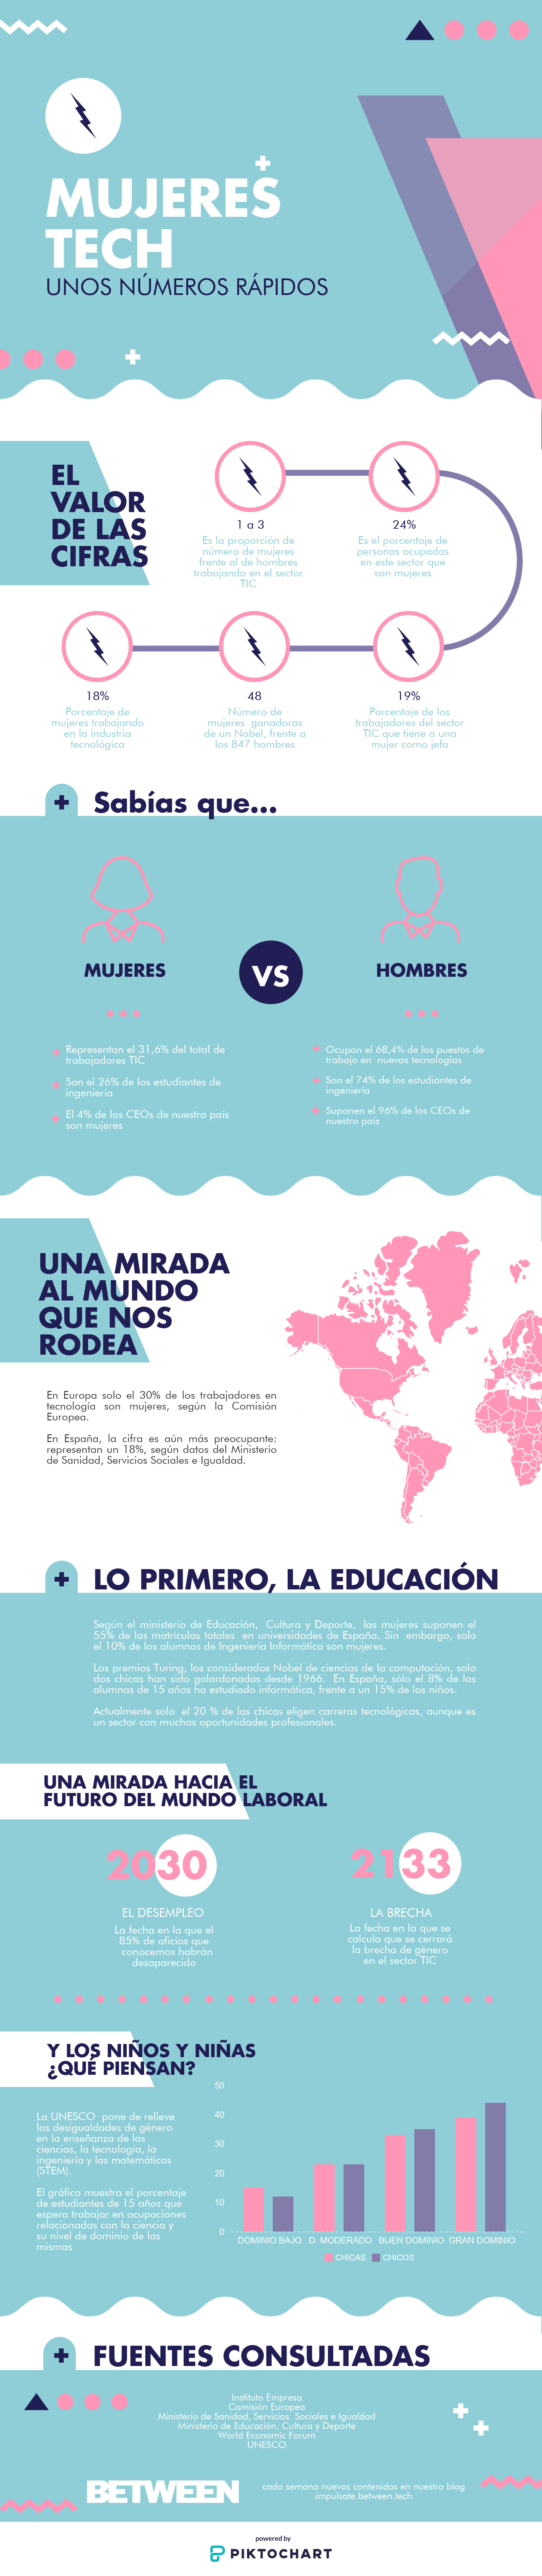 Infografía Mujeres Tech BETWEEN